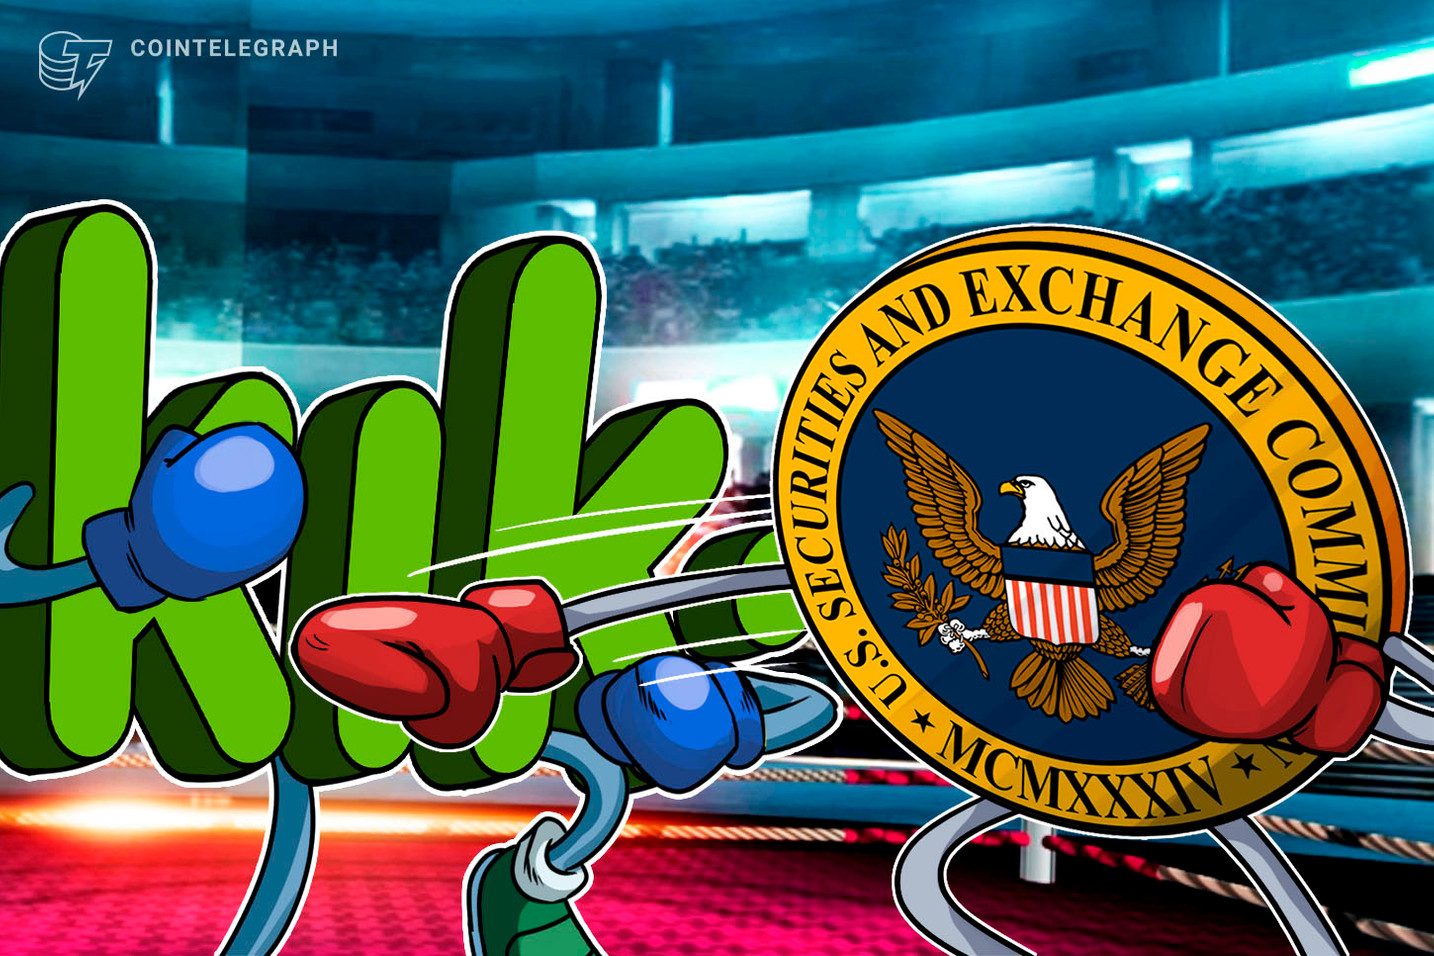 Kik Continues Legal Battle With SEC, Requests Trial Date Definition